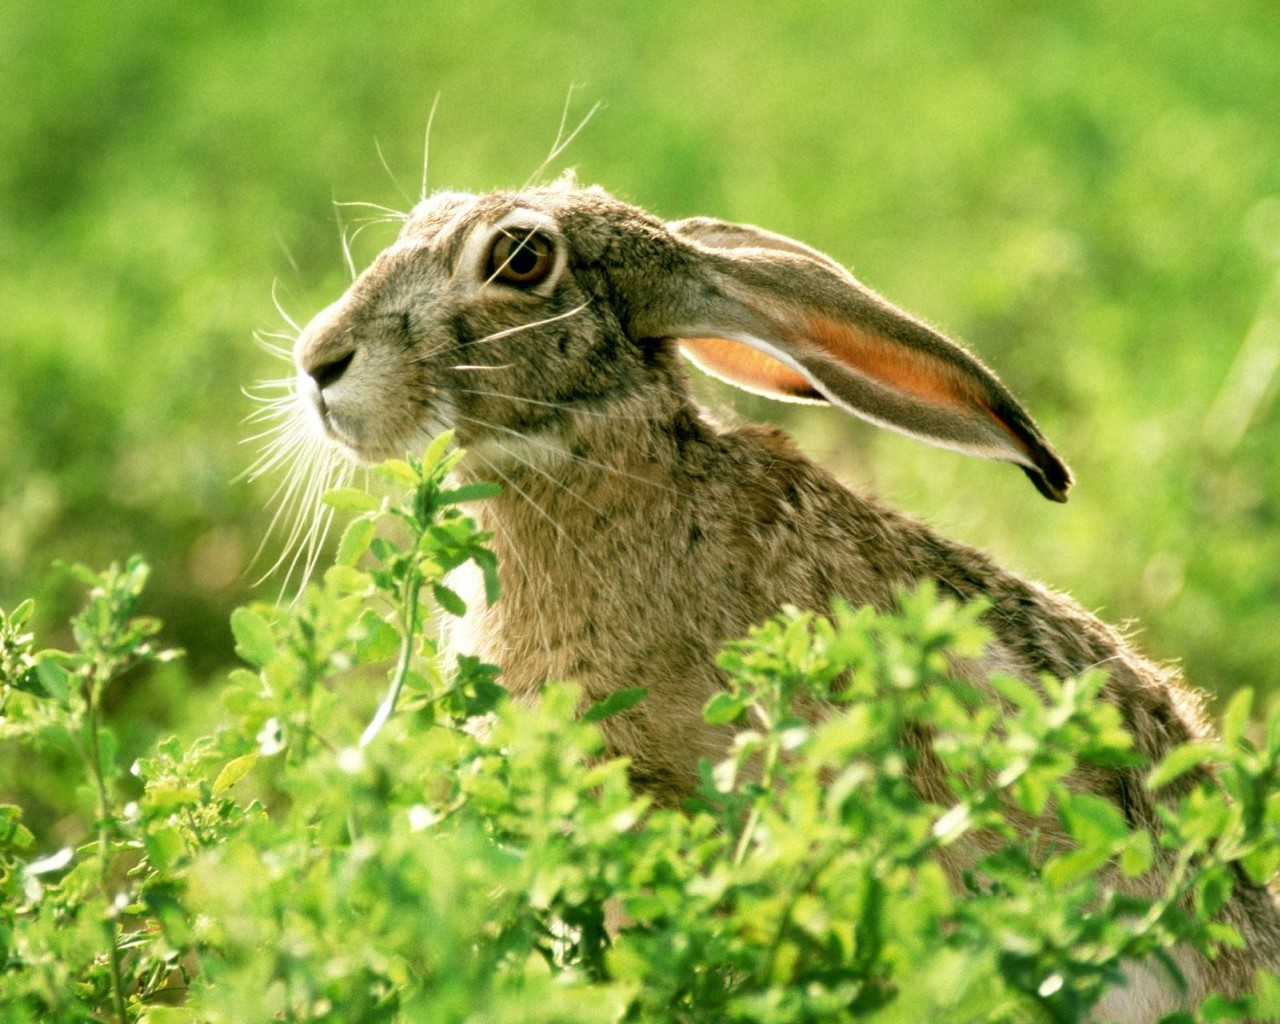 5521 download wallpaper Animals, Rodents, Rabbits screensavers and pictures for free